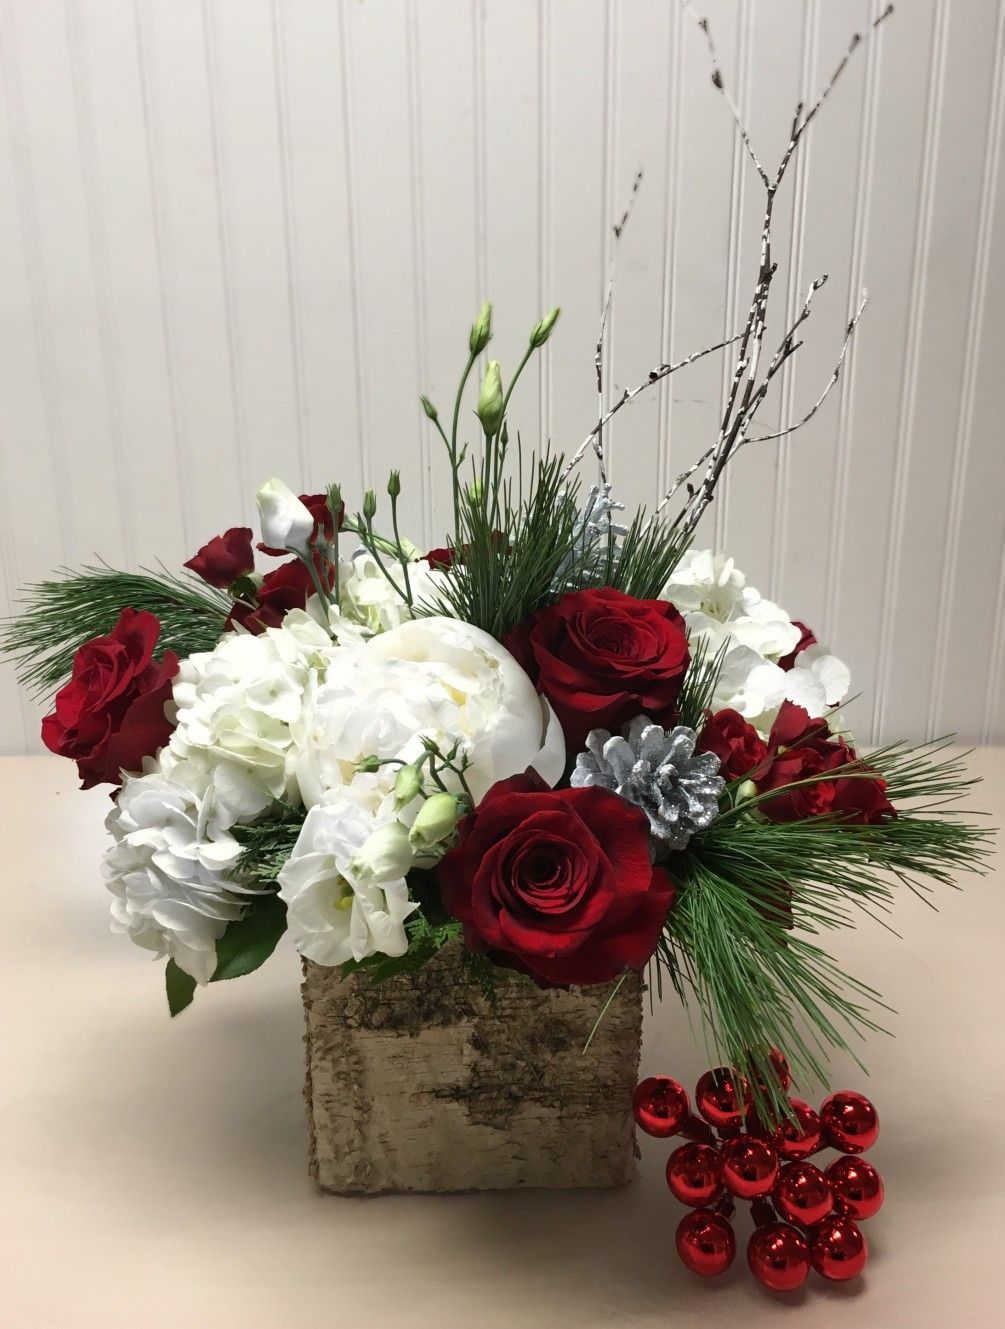 Christmas Birch by Coleen's Flower Shop Christmas floral